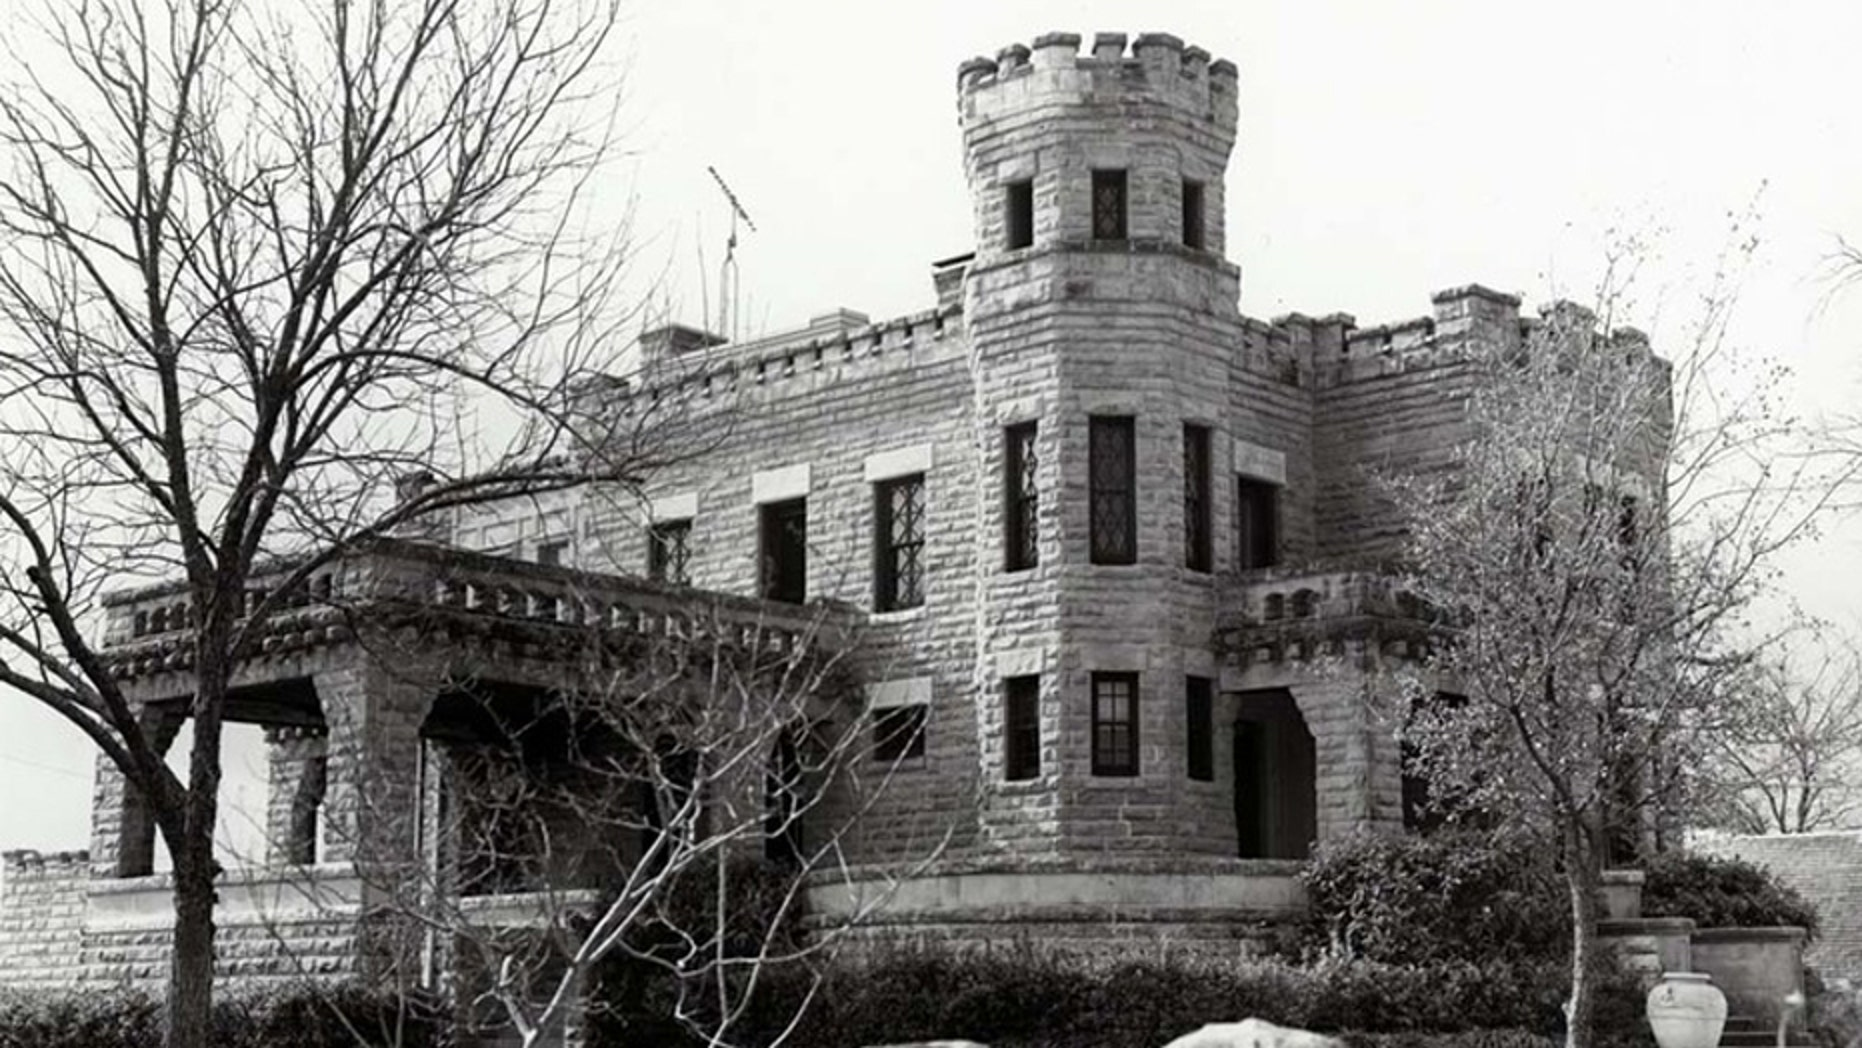 Construction on the 6,700-square-foot stone castle began in 1890 and was completed in 1913.